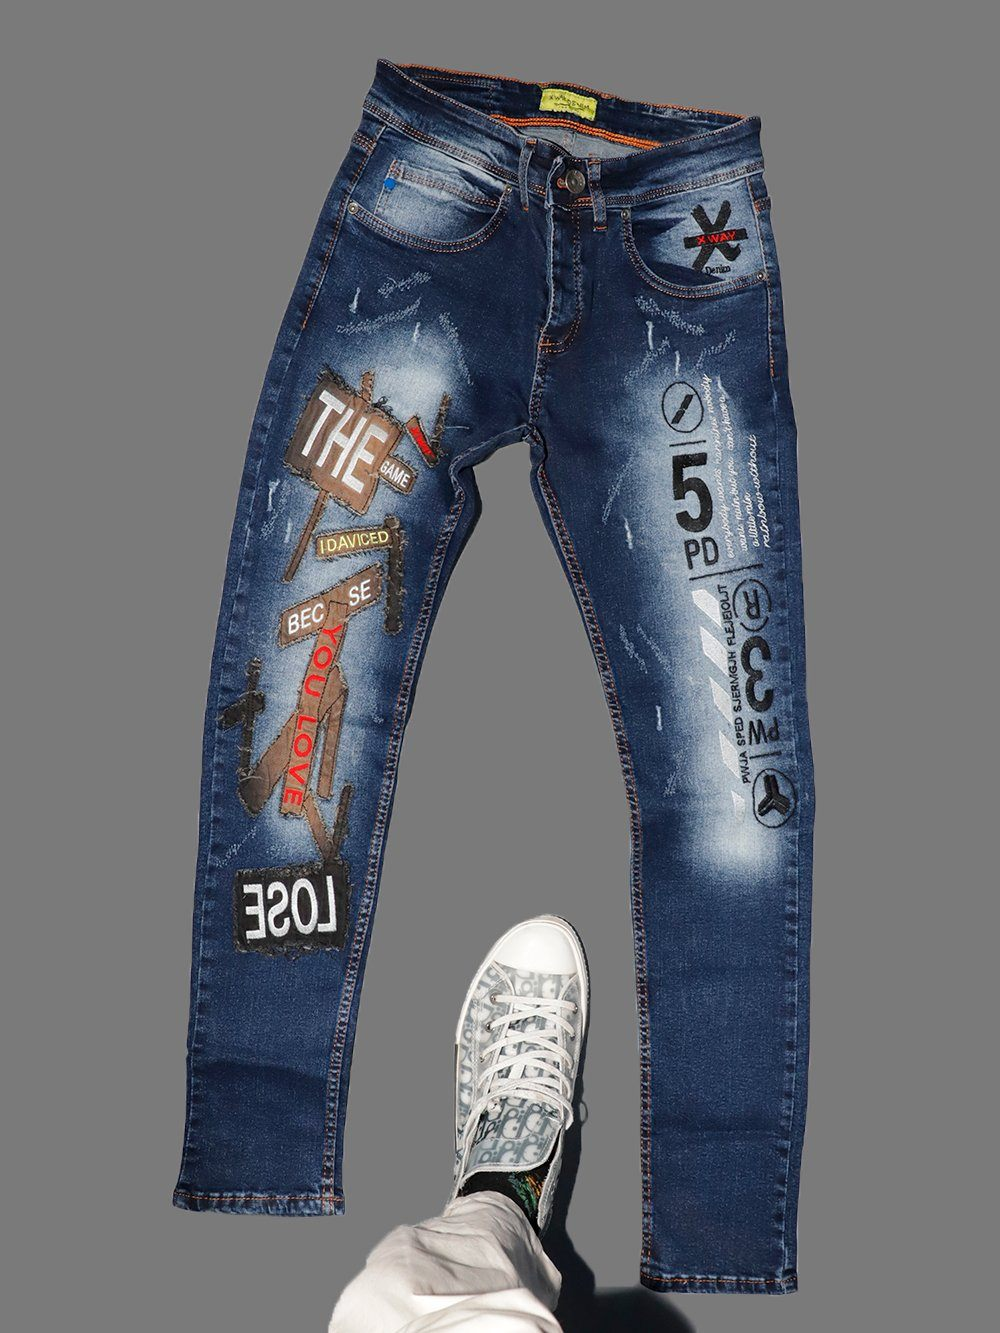 THE GAME Jeans-b SERNES-X